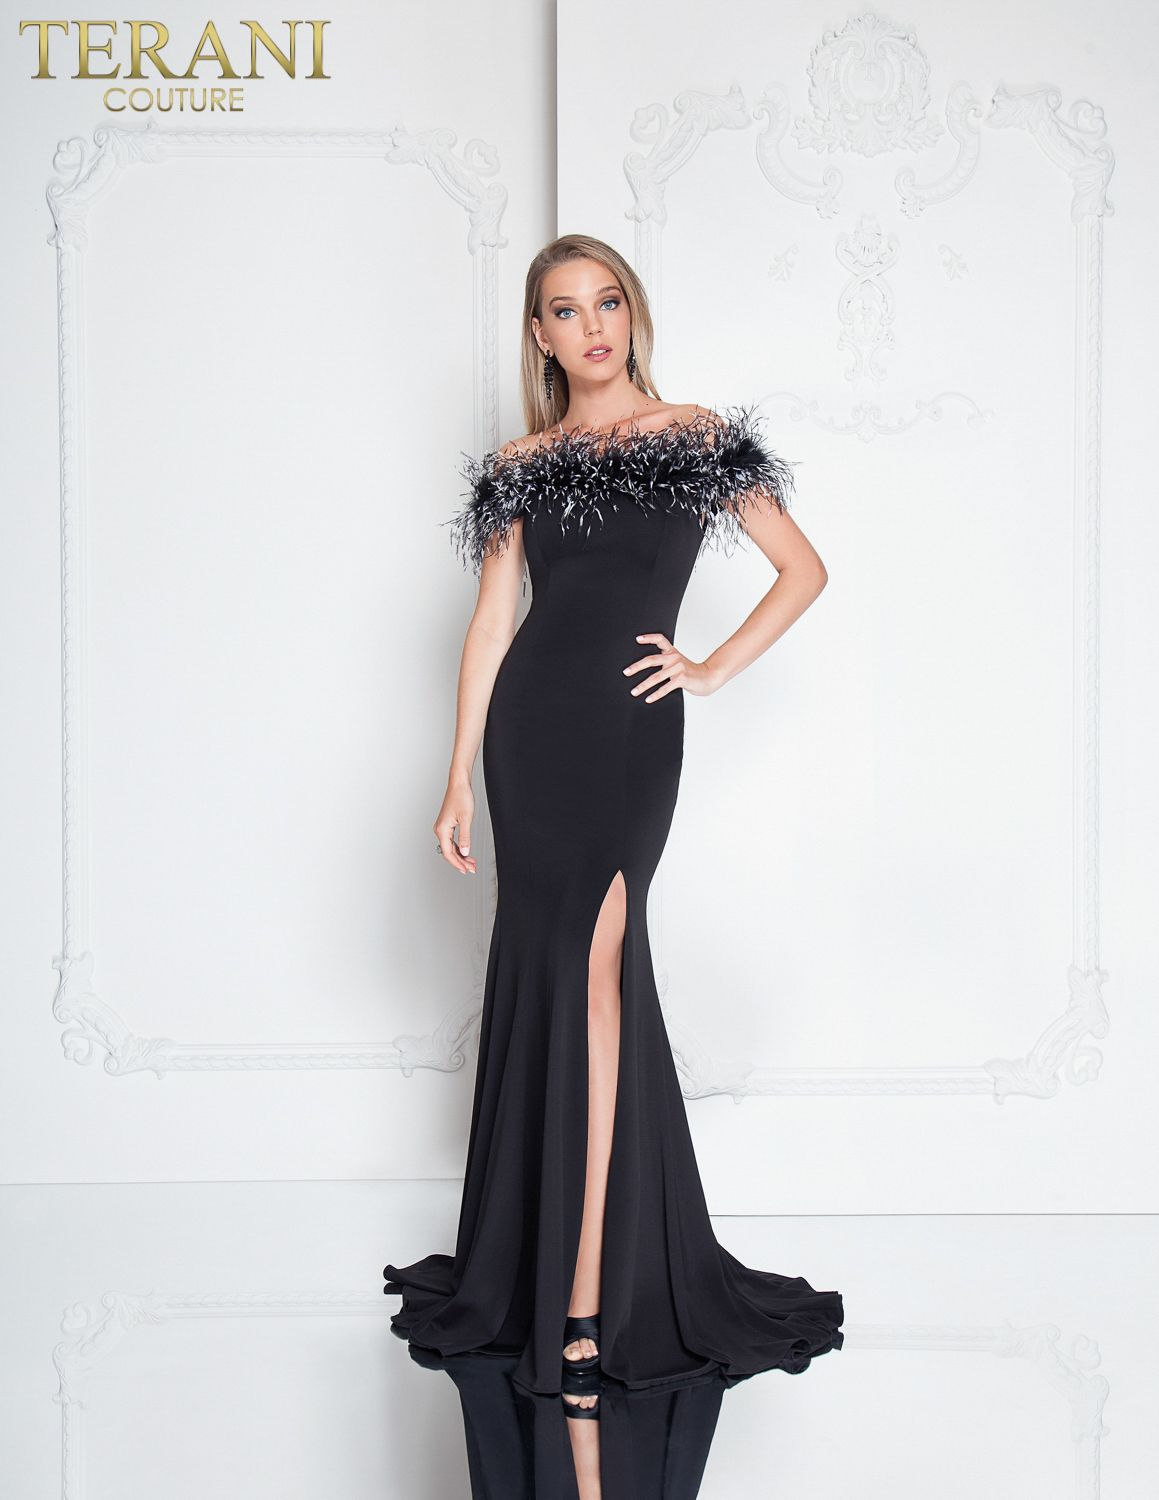 Off Shoulder feathered neckline floor-length gown with high thigh slit. ff0918bda628